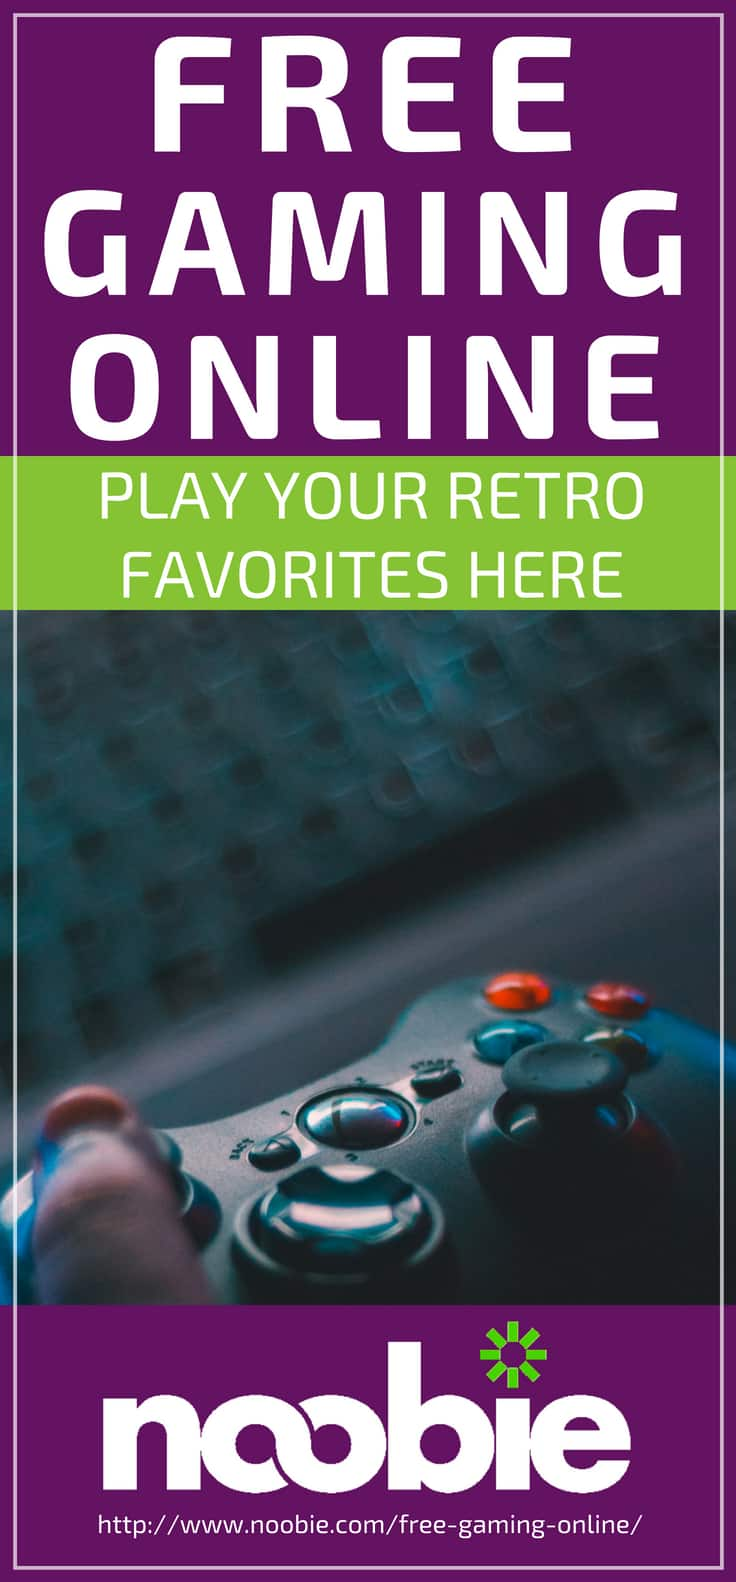 Free Gaming Online | Play Your Retro Favorites Here